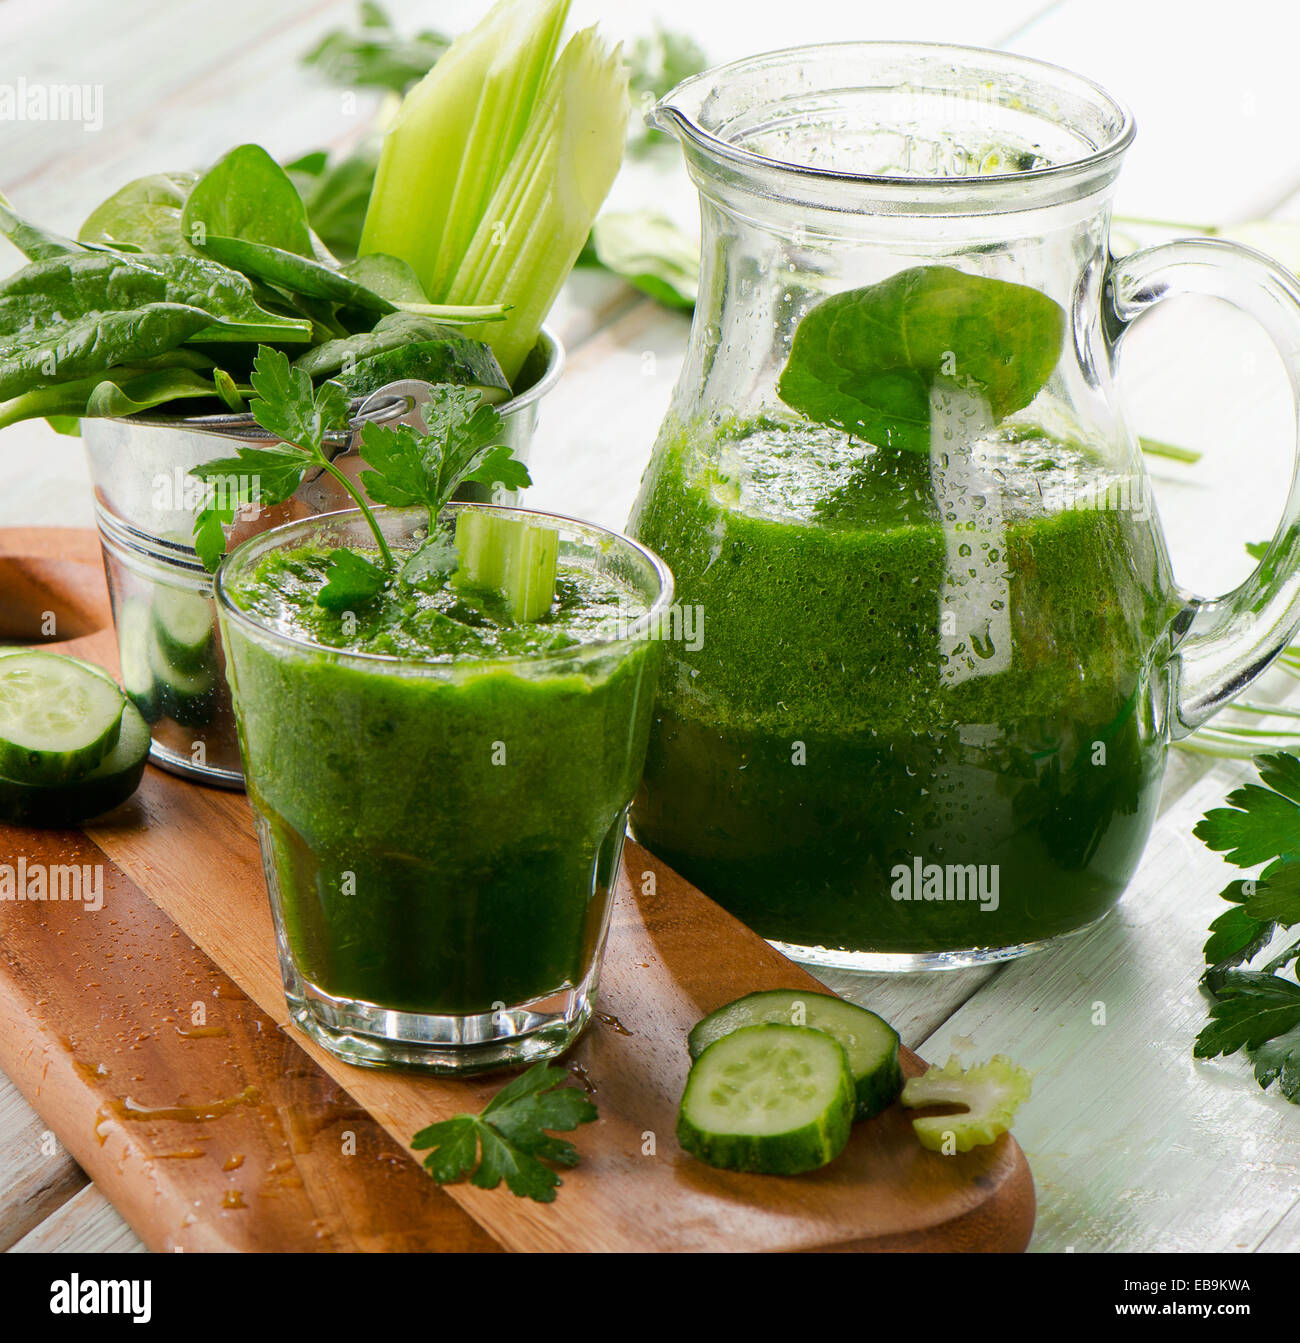 Healthy green smoothie on a wooden table. Selective focus - Stock Image